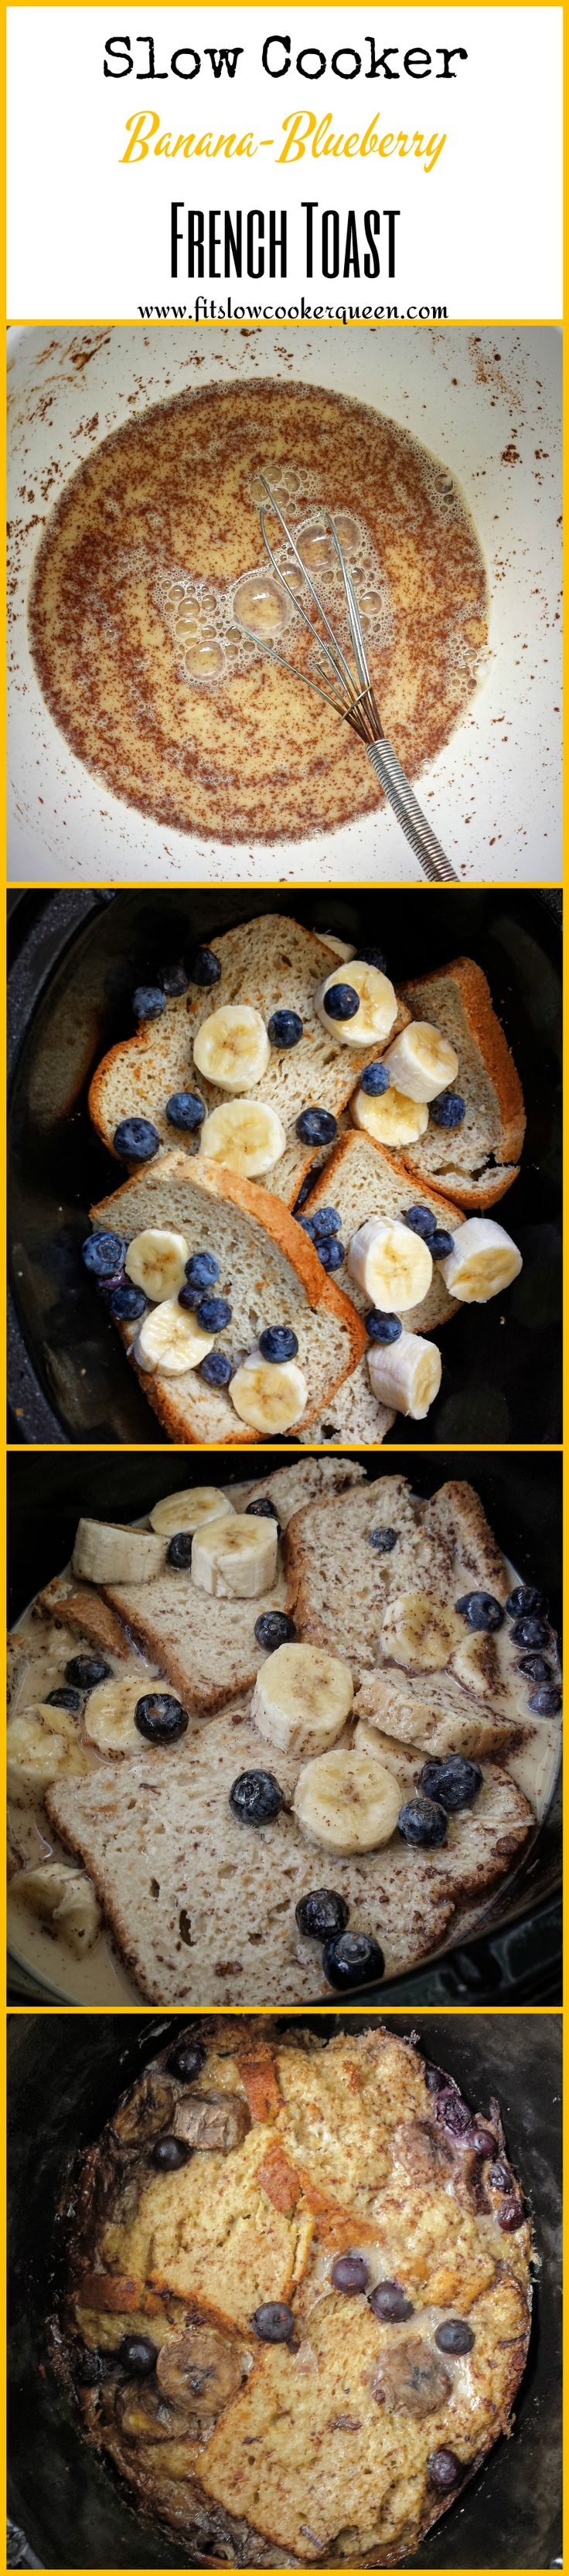 This gluten and dairy-free french toast is made in the slow cooker with bananas and blueberries. This cooks overnight in the crockpot.